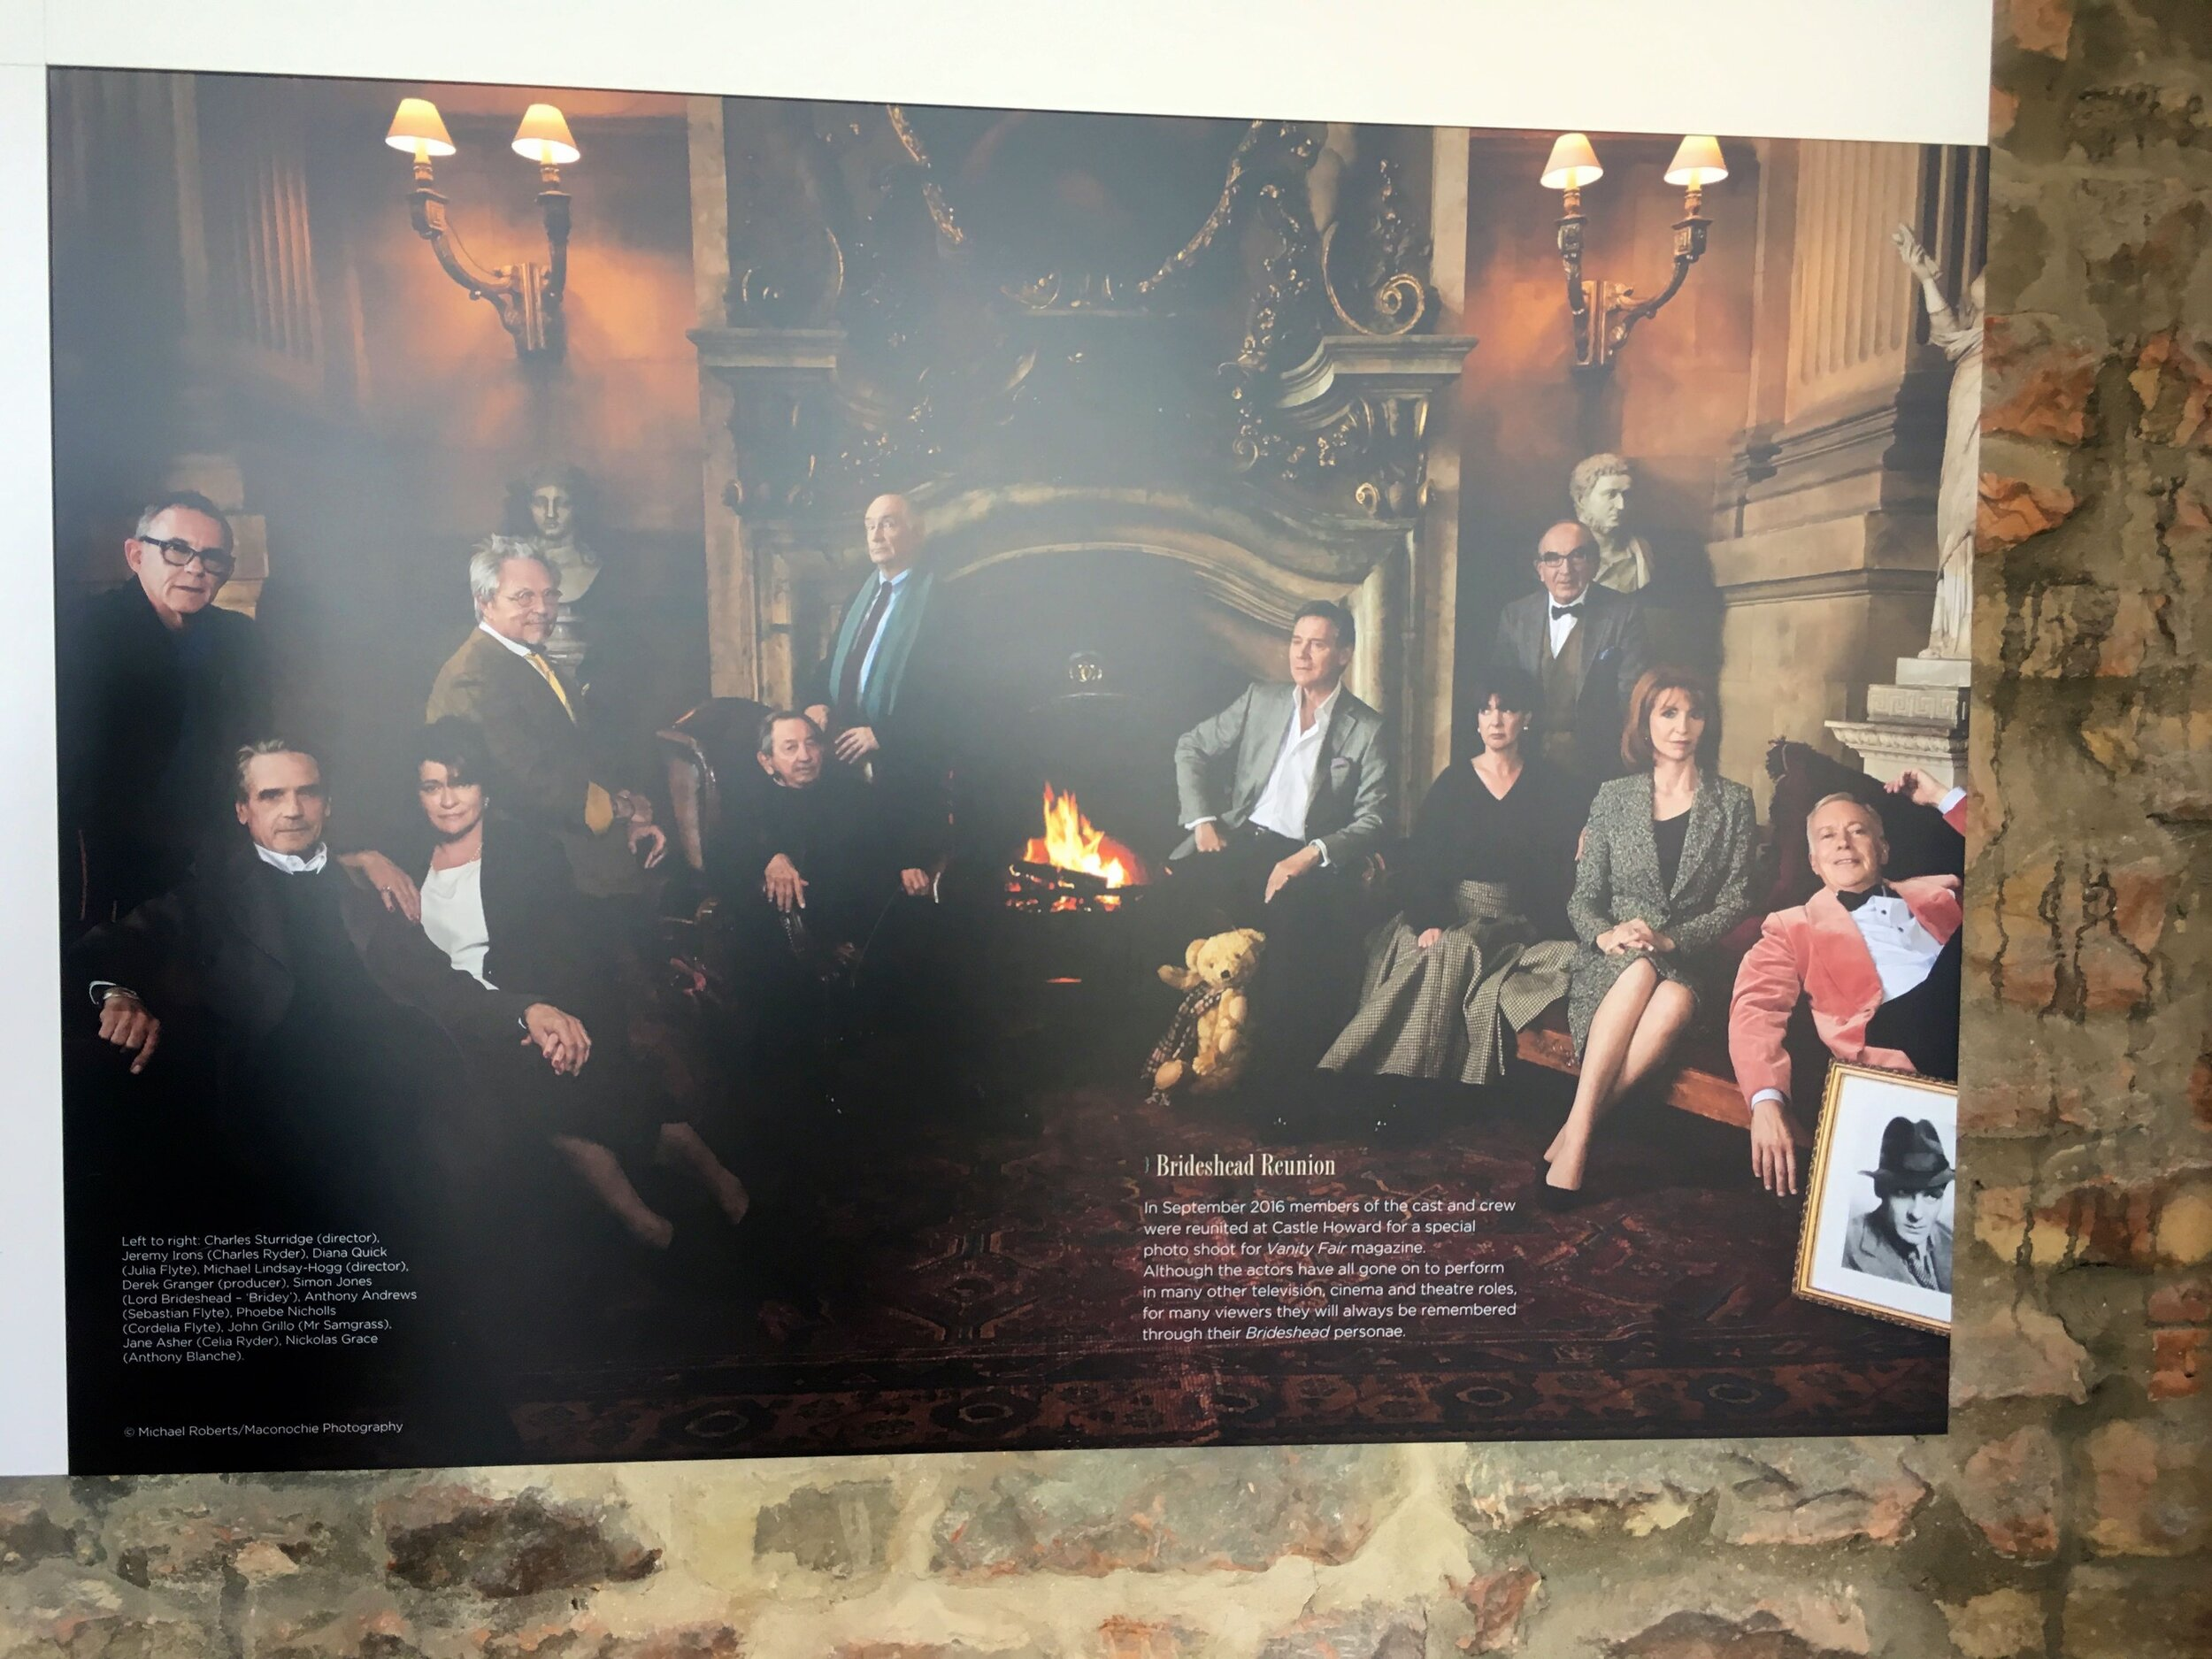 a peak at the cast from Brideshead Revisited together again